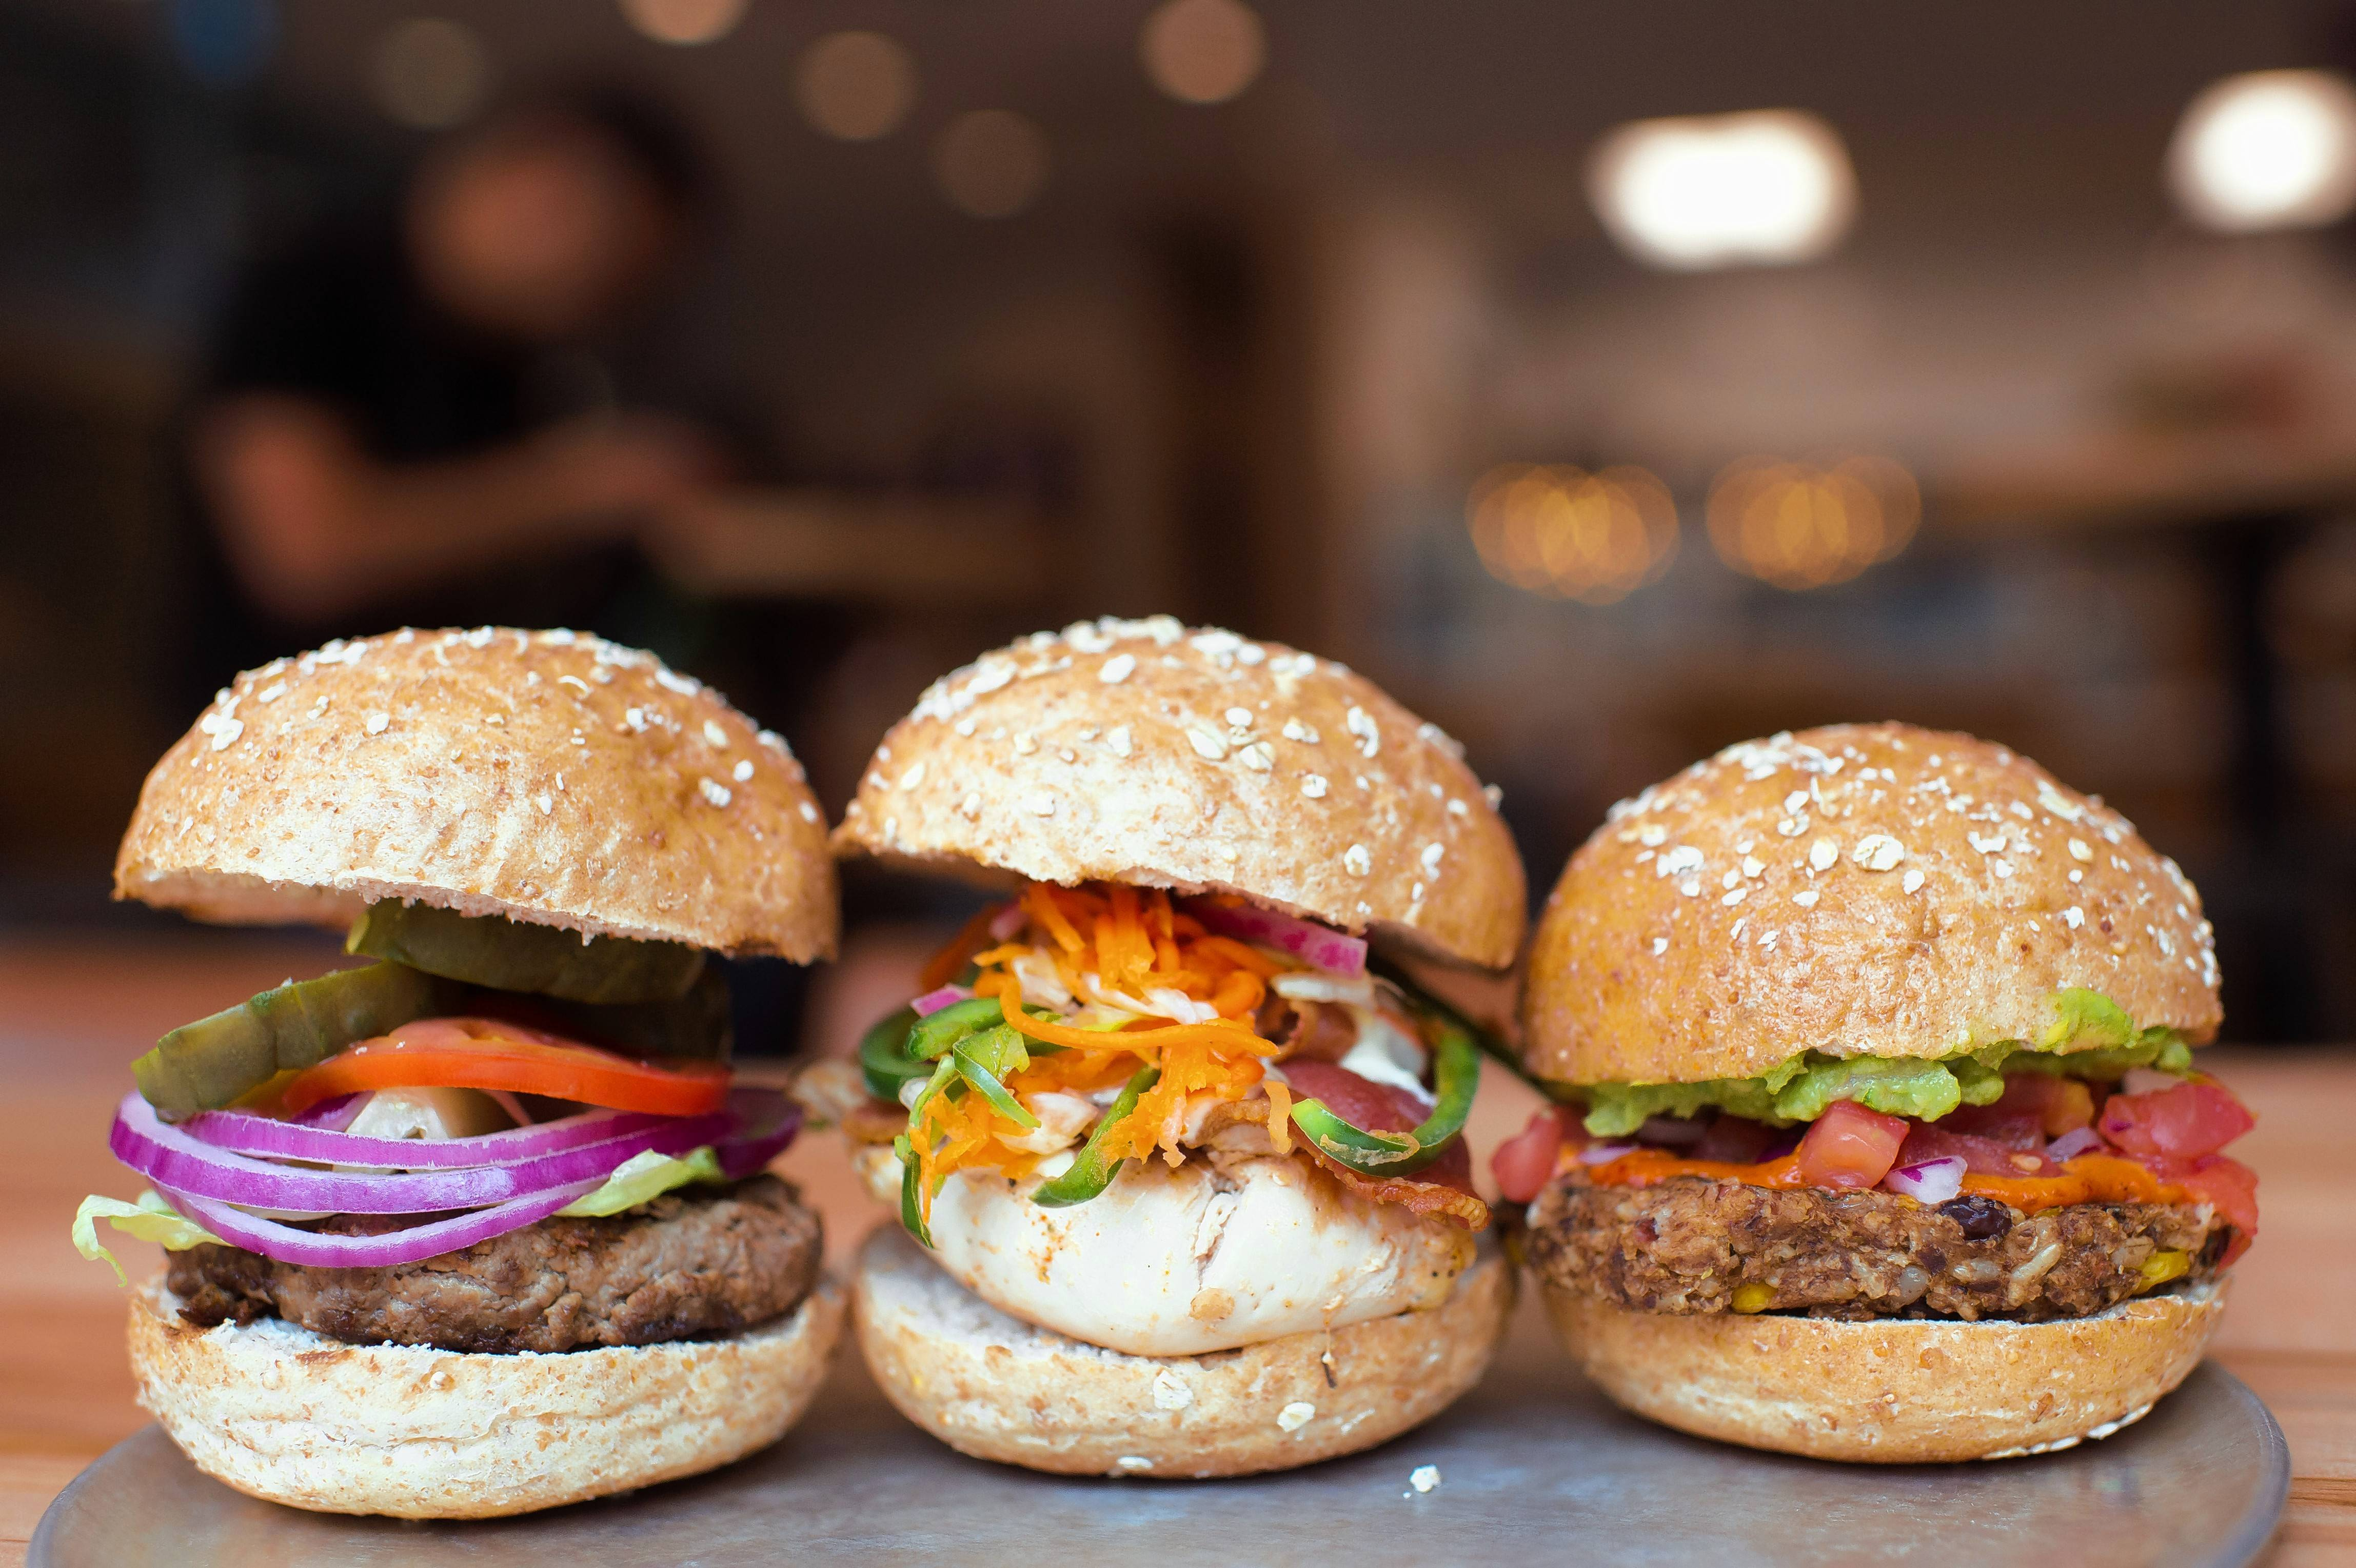 Fast-casual restaurant B.Good, which serves locally sourced burgers and more, opens Thursday in Schaumburg.